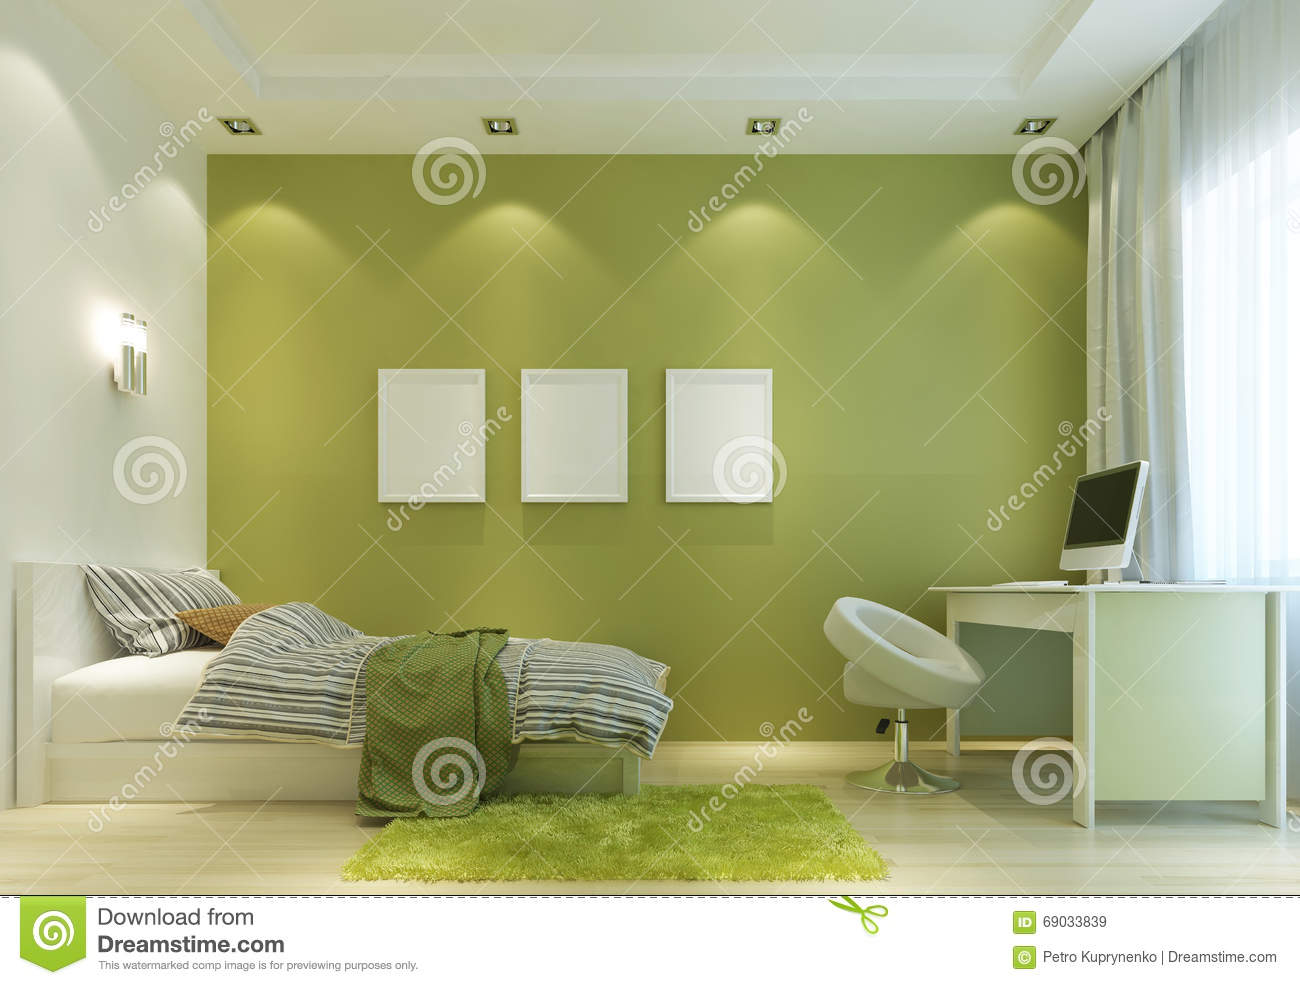 Design A Child\'s Room In A Contemporary Style, With A Bed And A ...